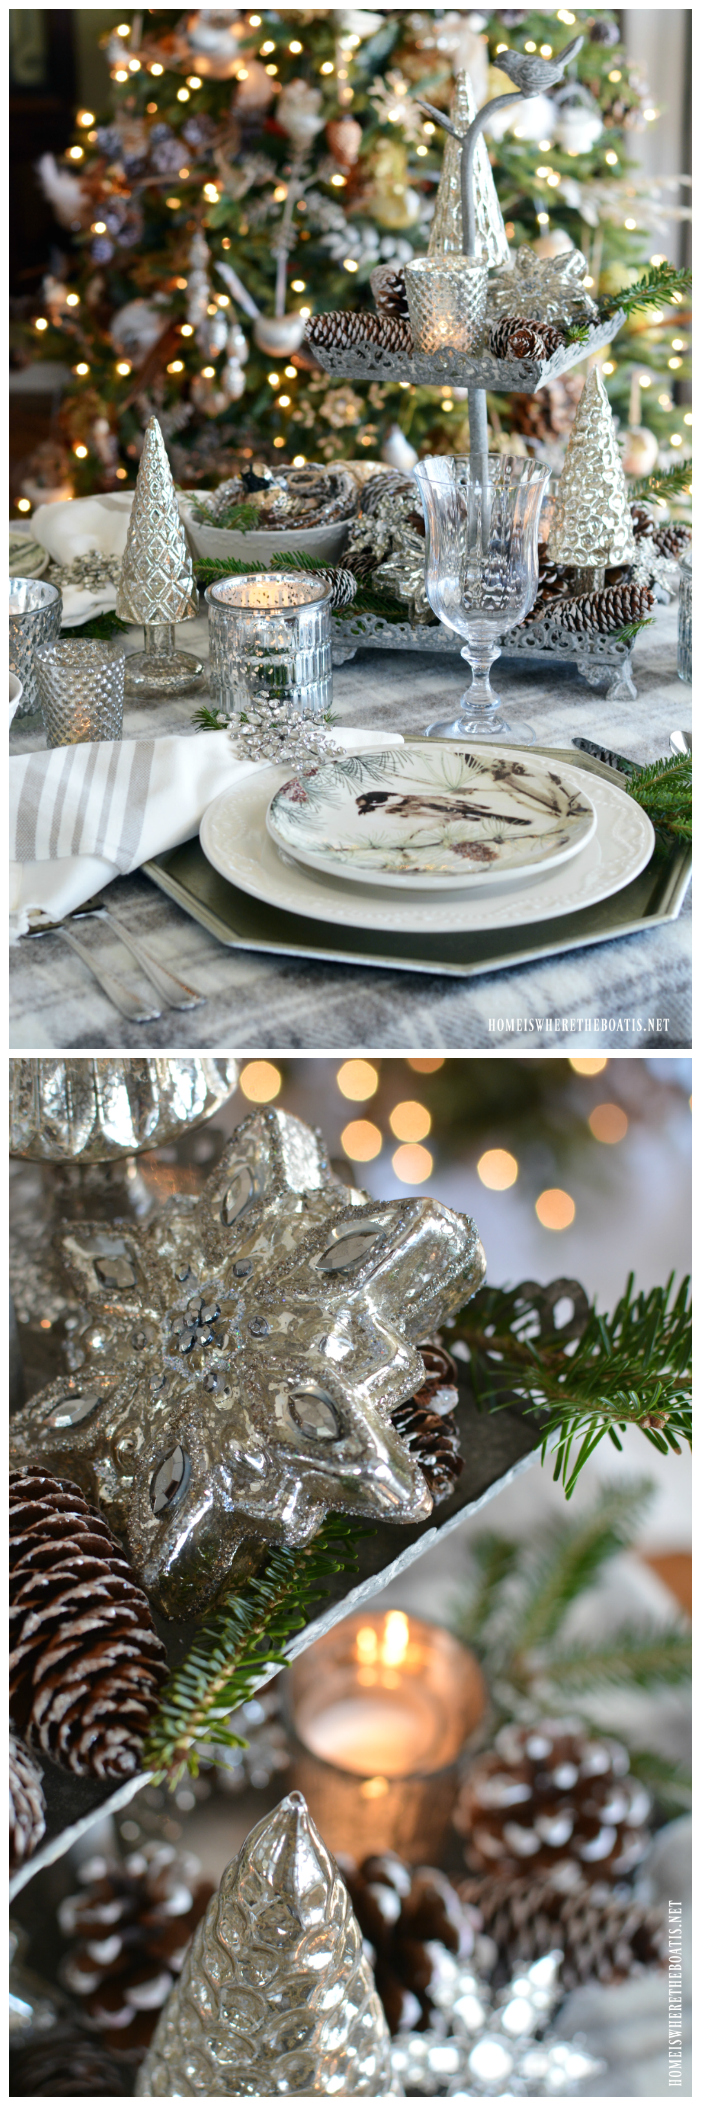 Winter table with birds, mercury glass, pine cones and snowflakes | homeiswheretheboatis.net #Christmas #winter #tablescapes